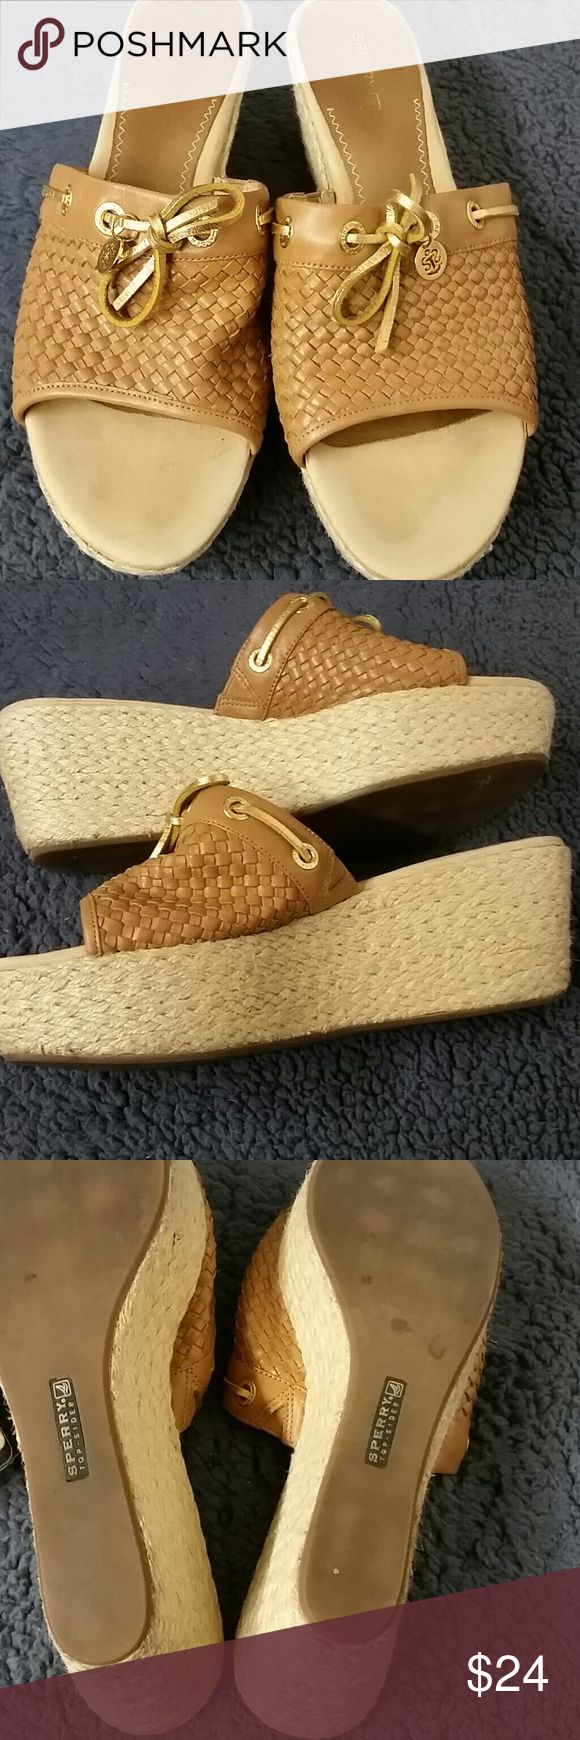 Sperry shoes size 10M Cute Sperry slip-on shoes with a 3-inch heel upper leather size 10M Sperry Shoes